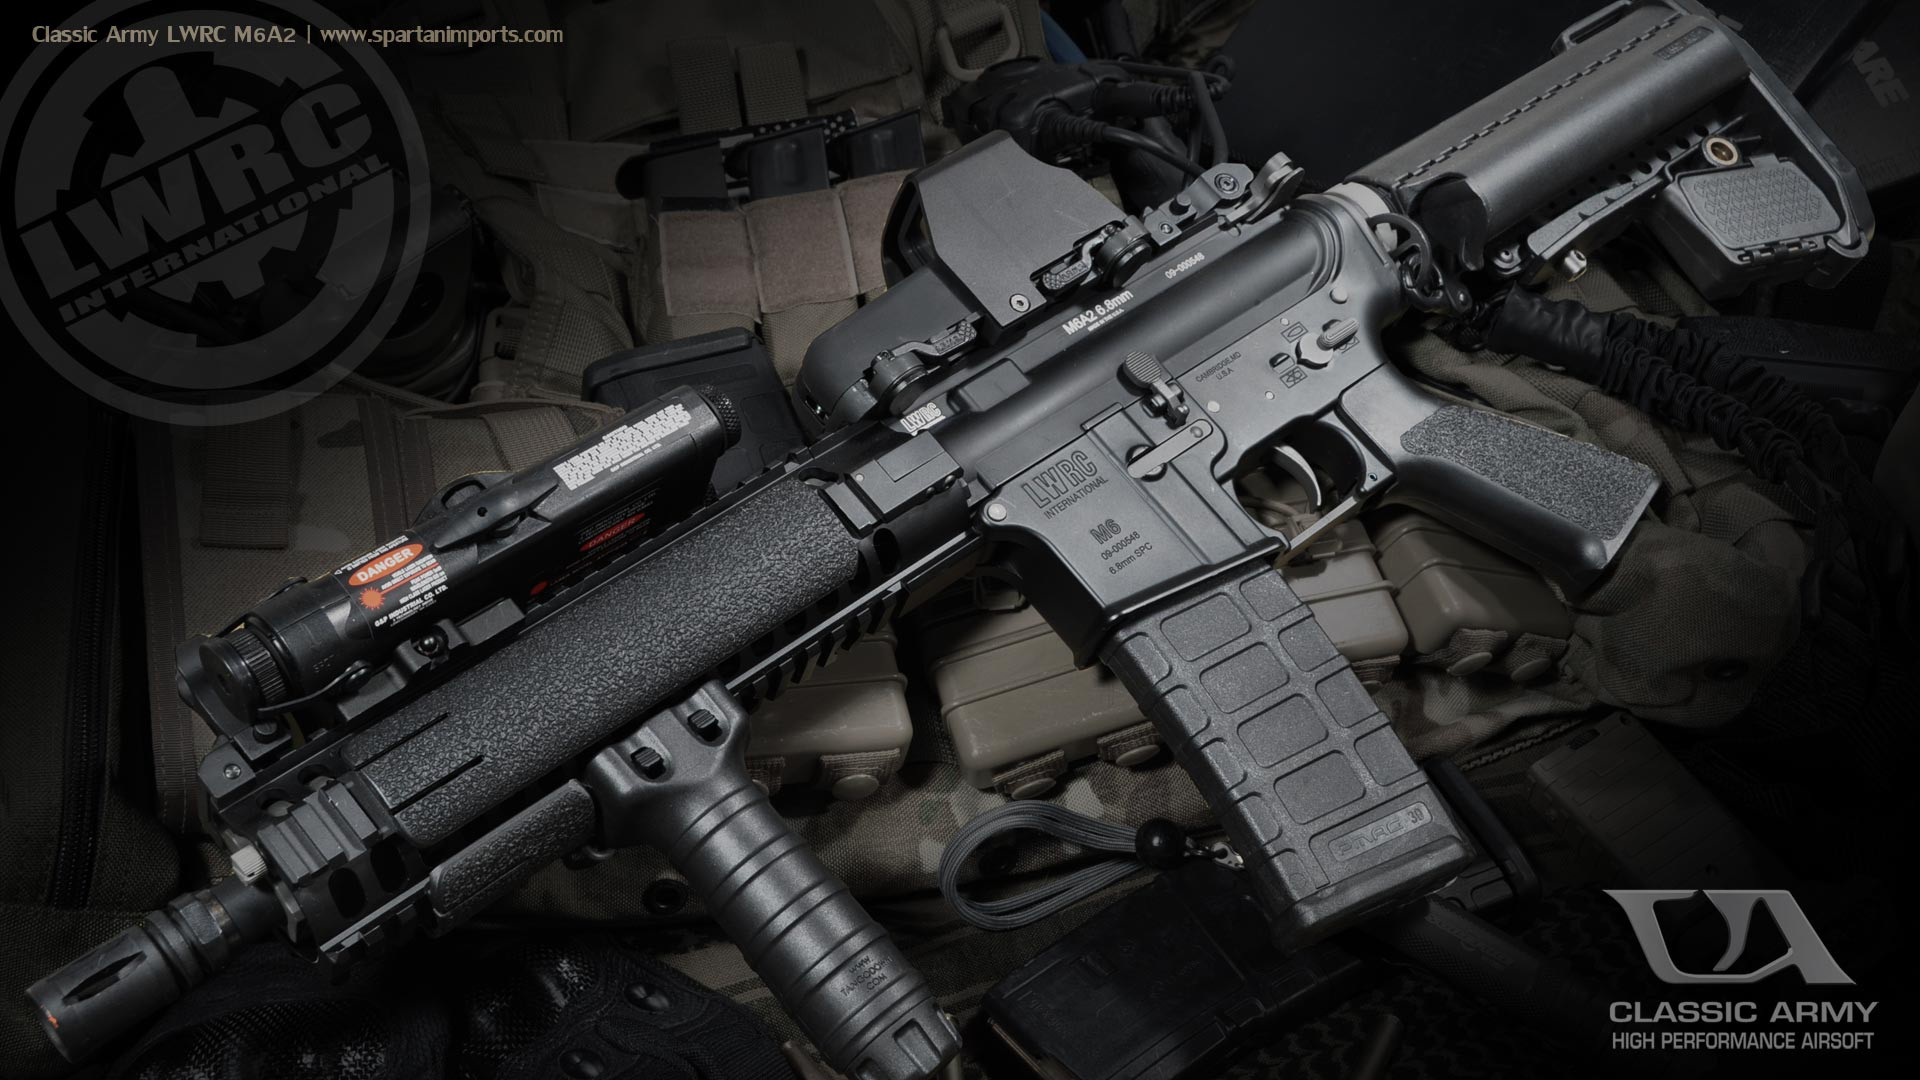 rifles weapons airsoft Combat Arms carbine firearms M6A2 1920x1080